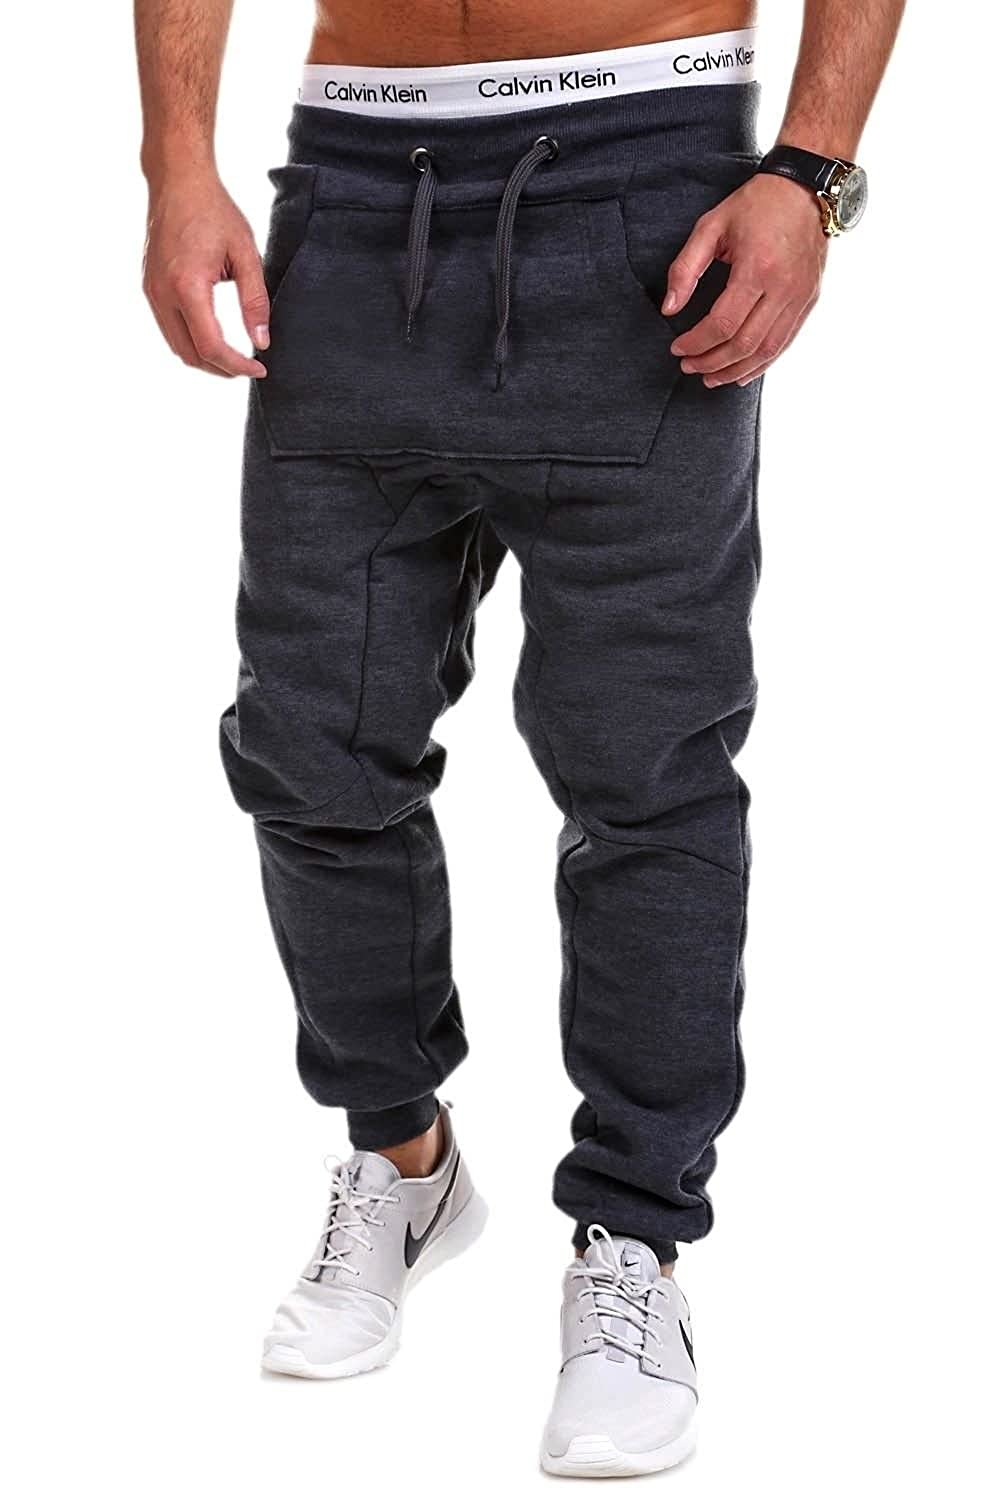 BEHYPE Men's Active Jogging Sweat Pants Trousers Low Crotch P81